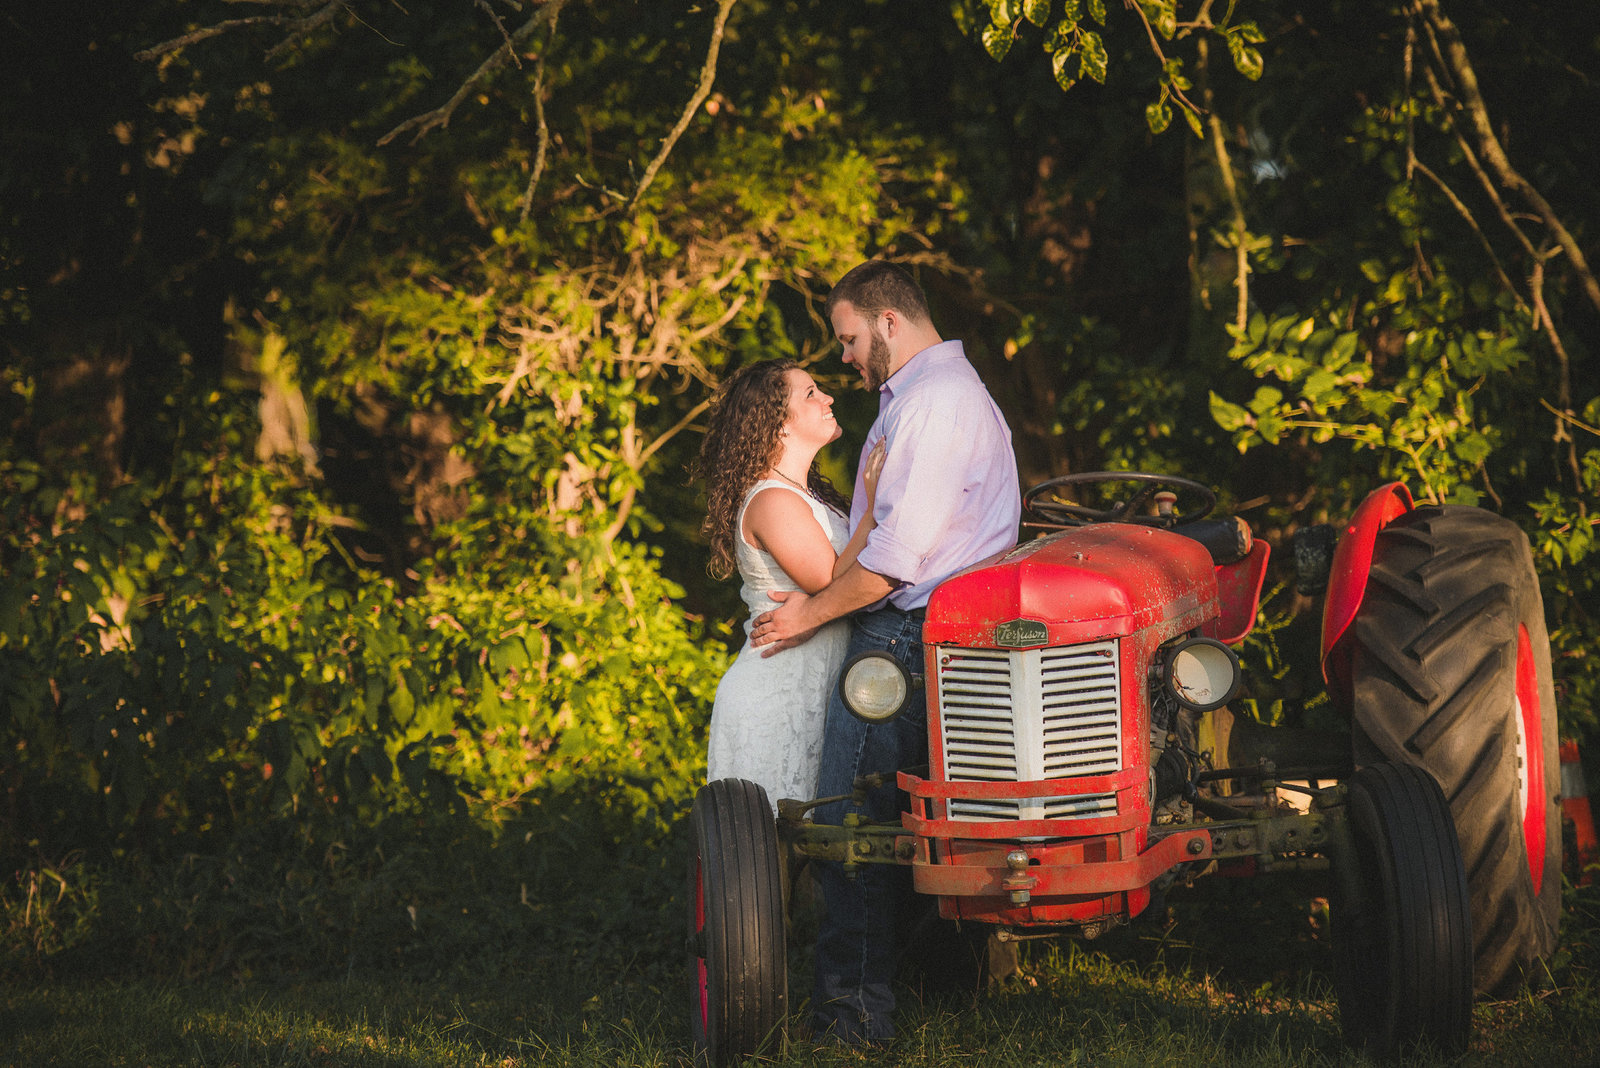 NJ_Rustic_Engagement_Photography061